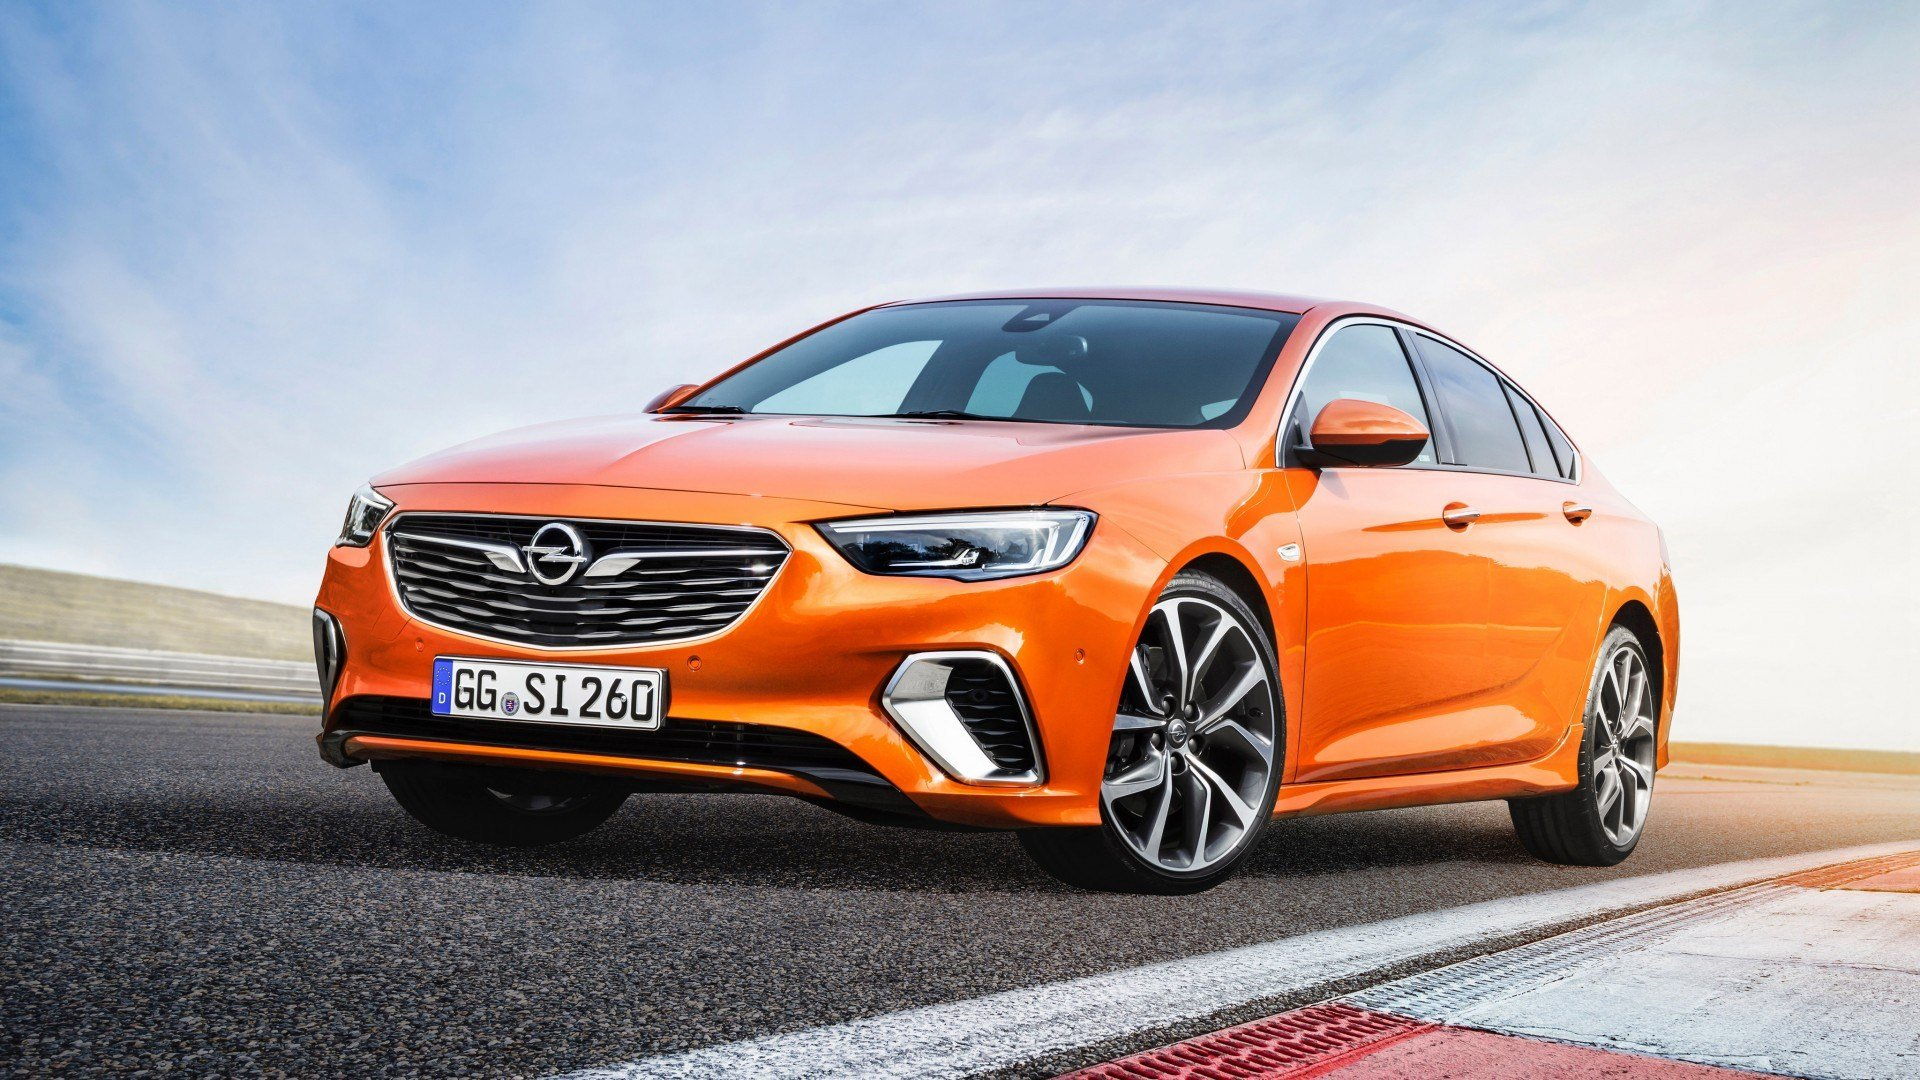 Latest 2018 Opel Insignia Gsi 4K Wallpaper Hd Car Wallpapers Free Download